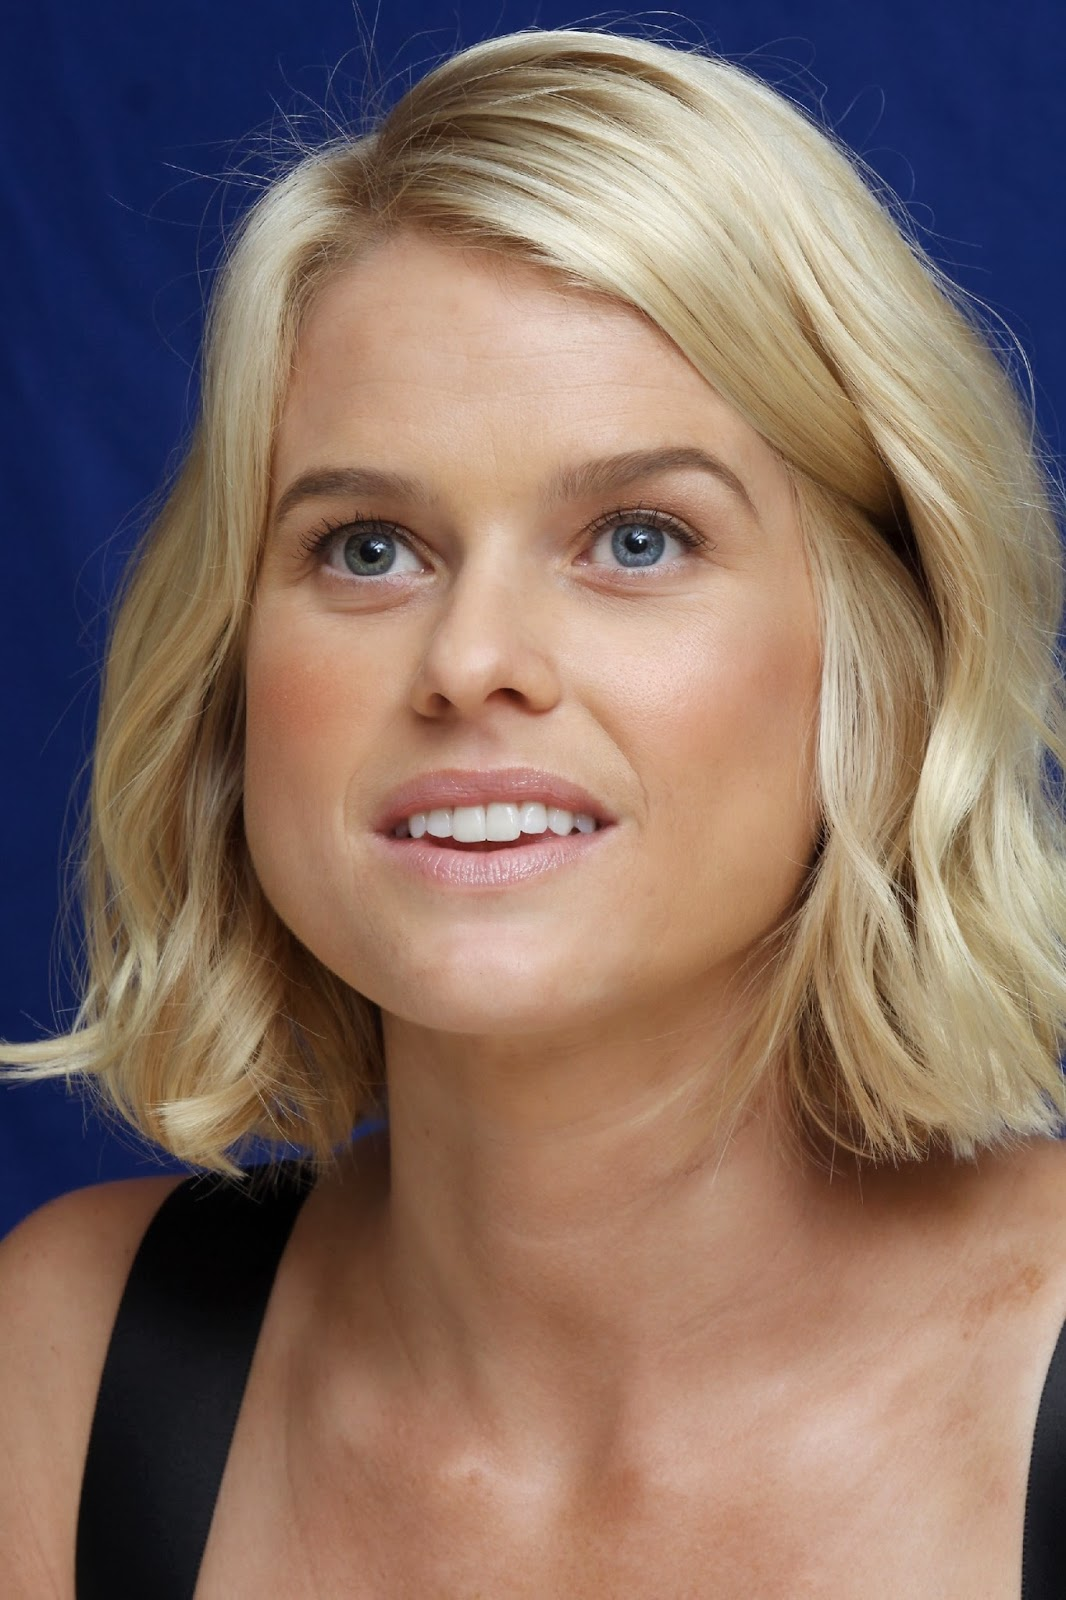 Latest Celebrity Photos: Alice Eve Sexy and Hot Wallpapers